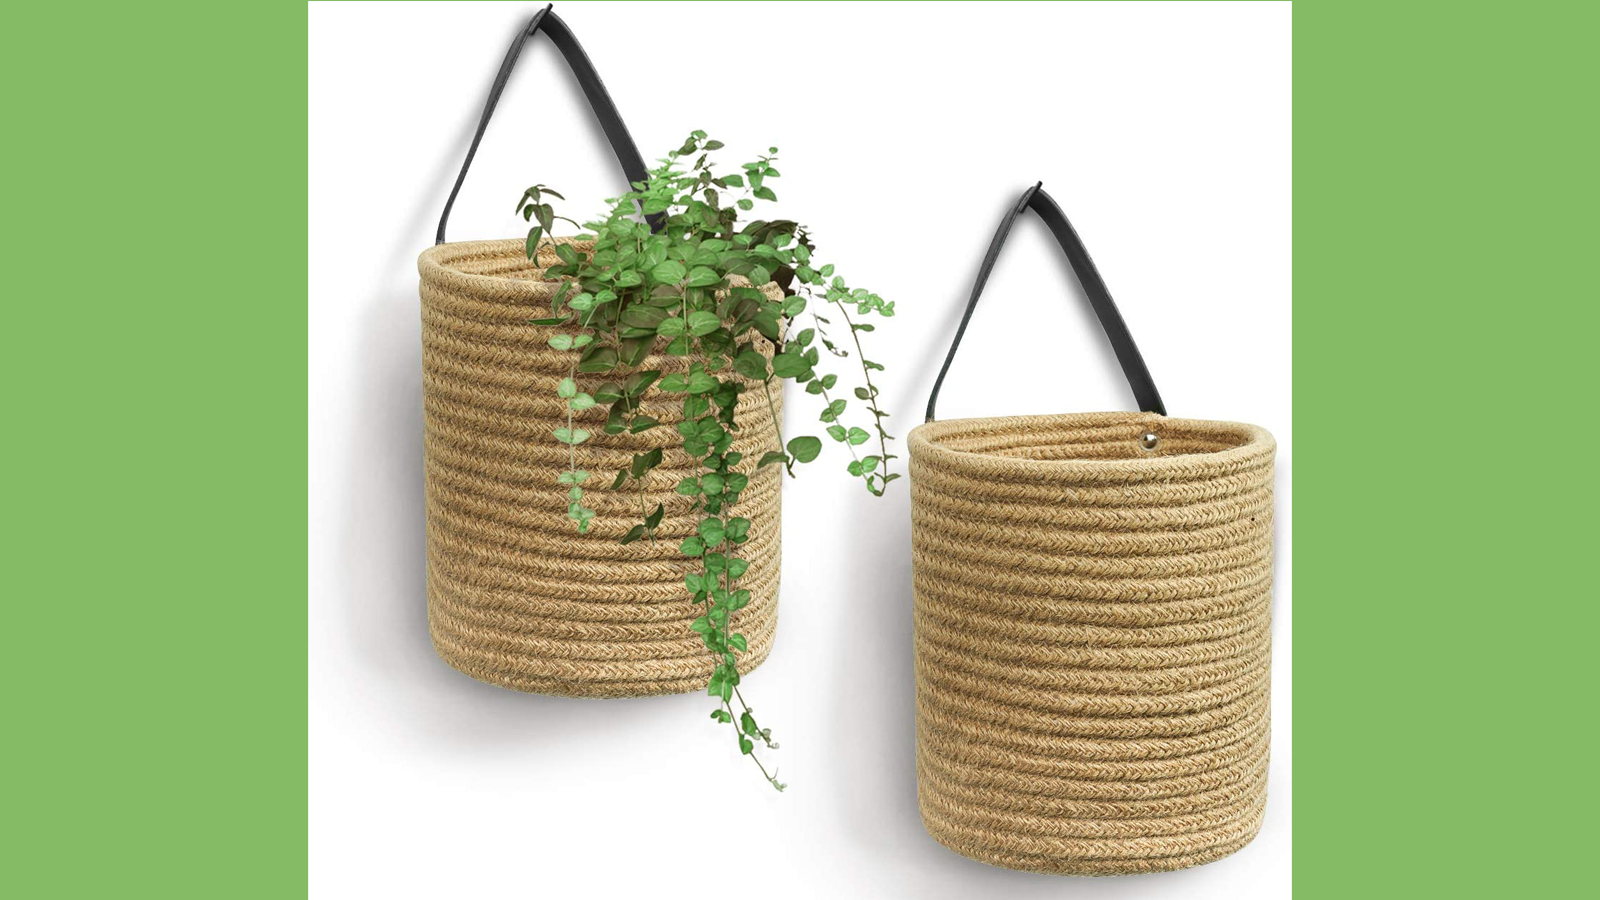 Add a Splash of Style to Your Home with These Cute Jute Hanging Baskets